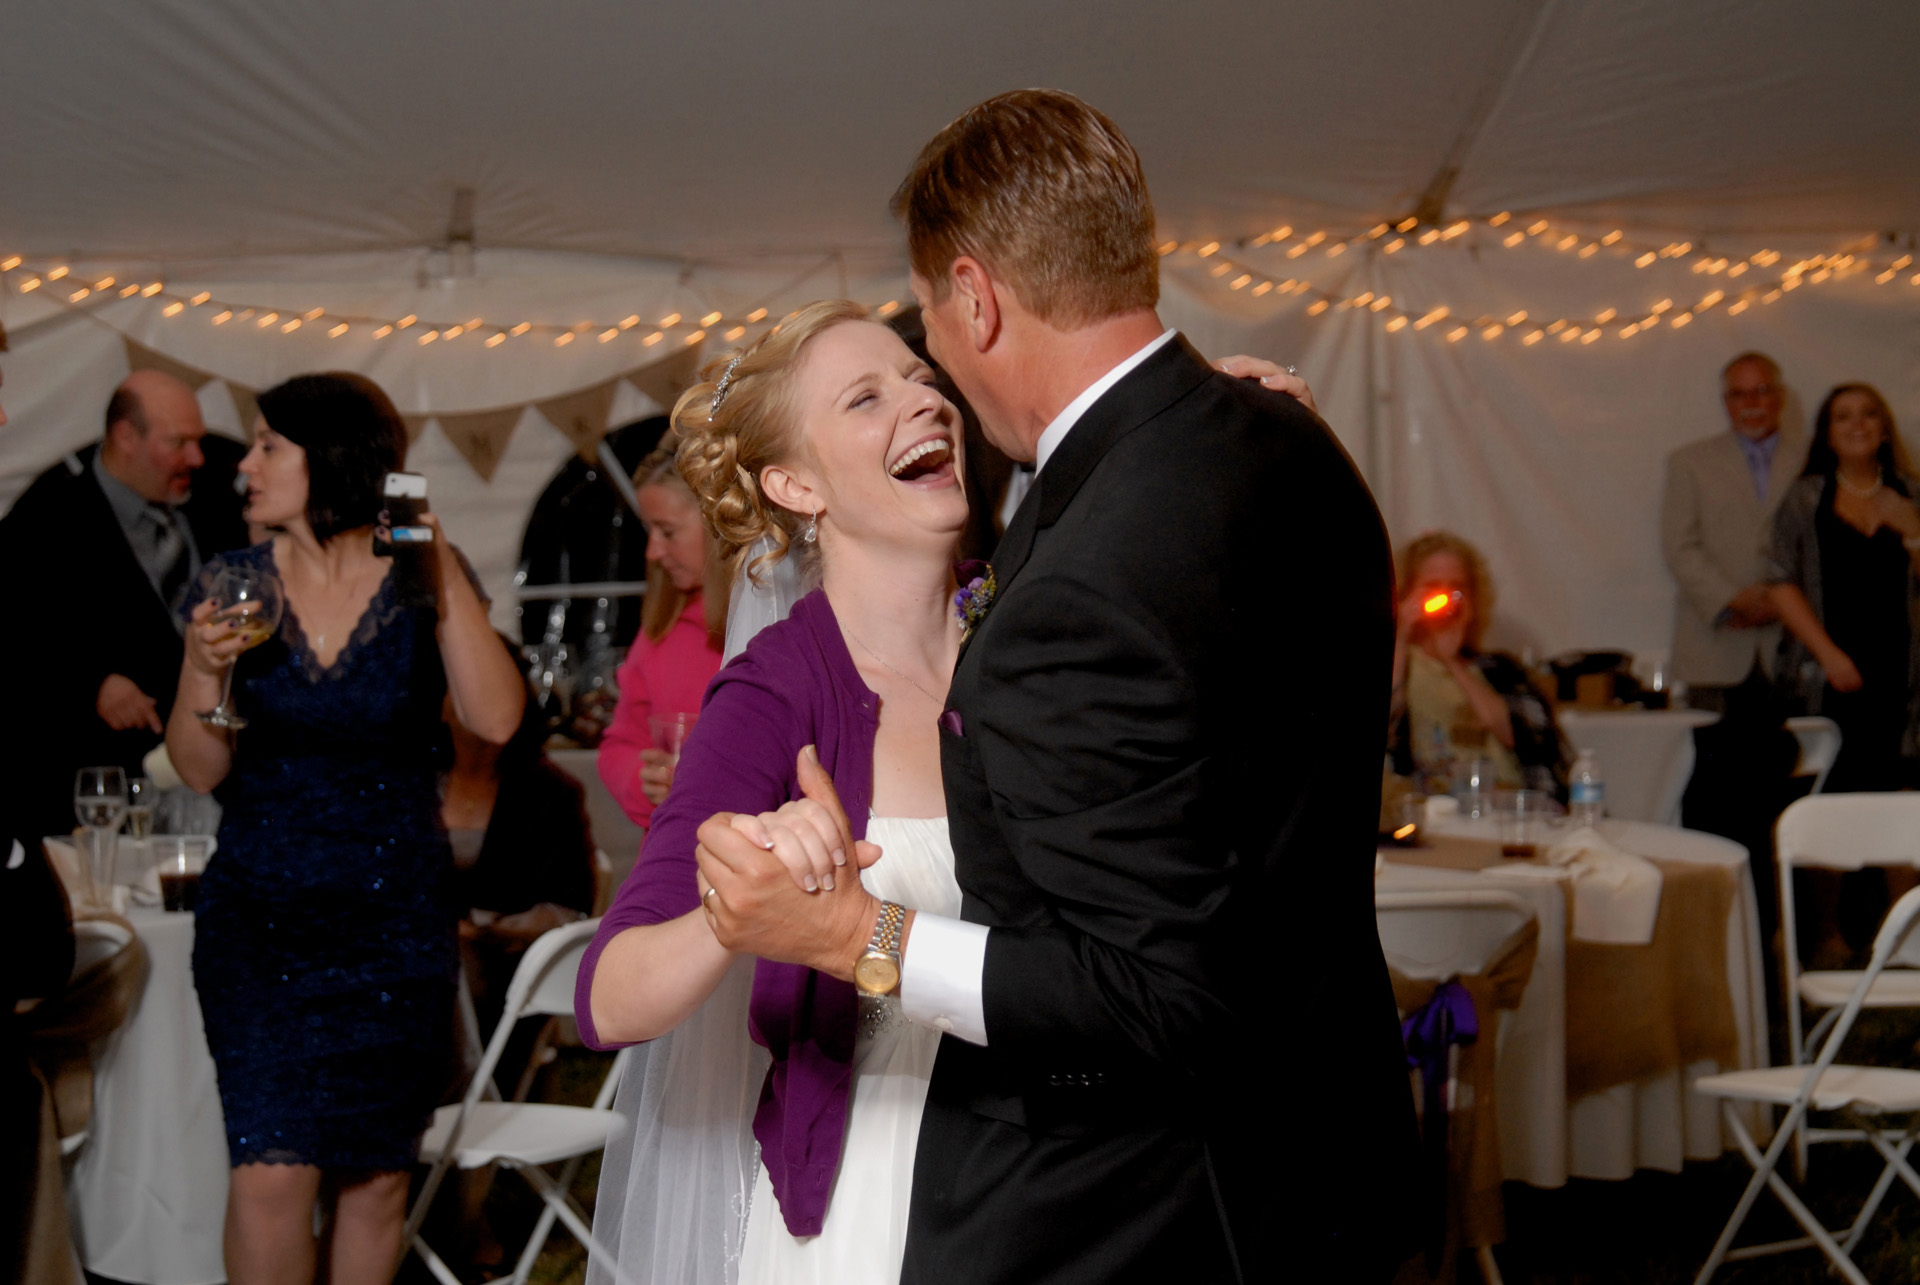 Best Michigan backyard wedding photography features photojournalist photos of the bride and her father dancing their first dance in metro Detroit, Michigan featuring their lovely backyard garden wedding in fall.